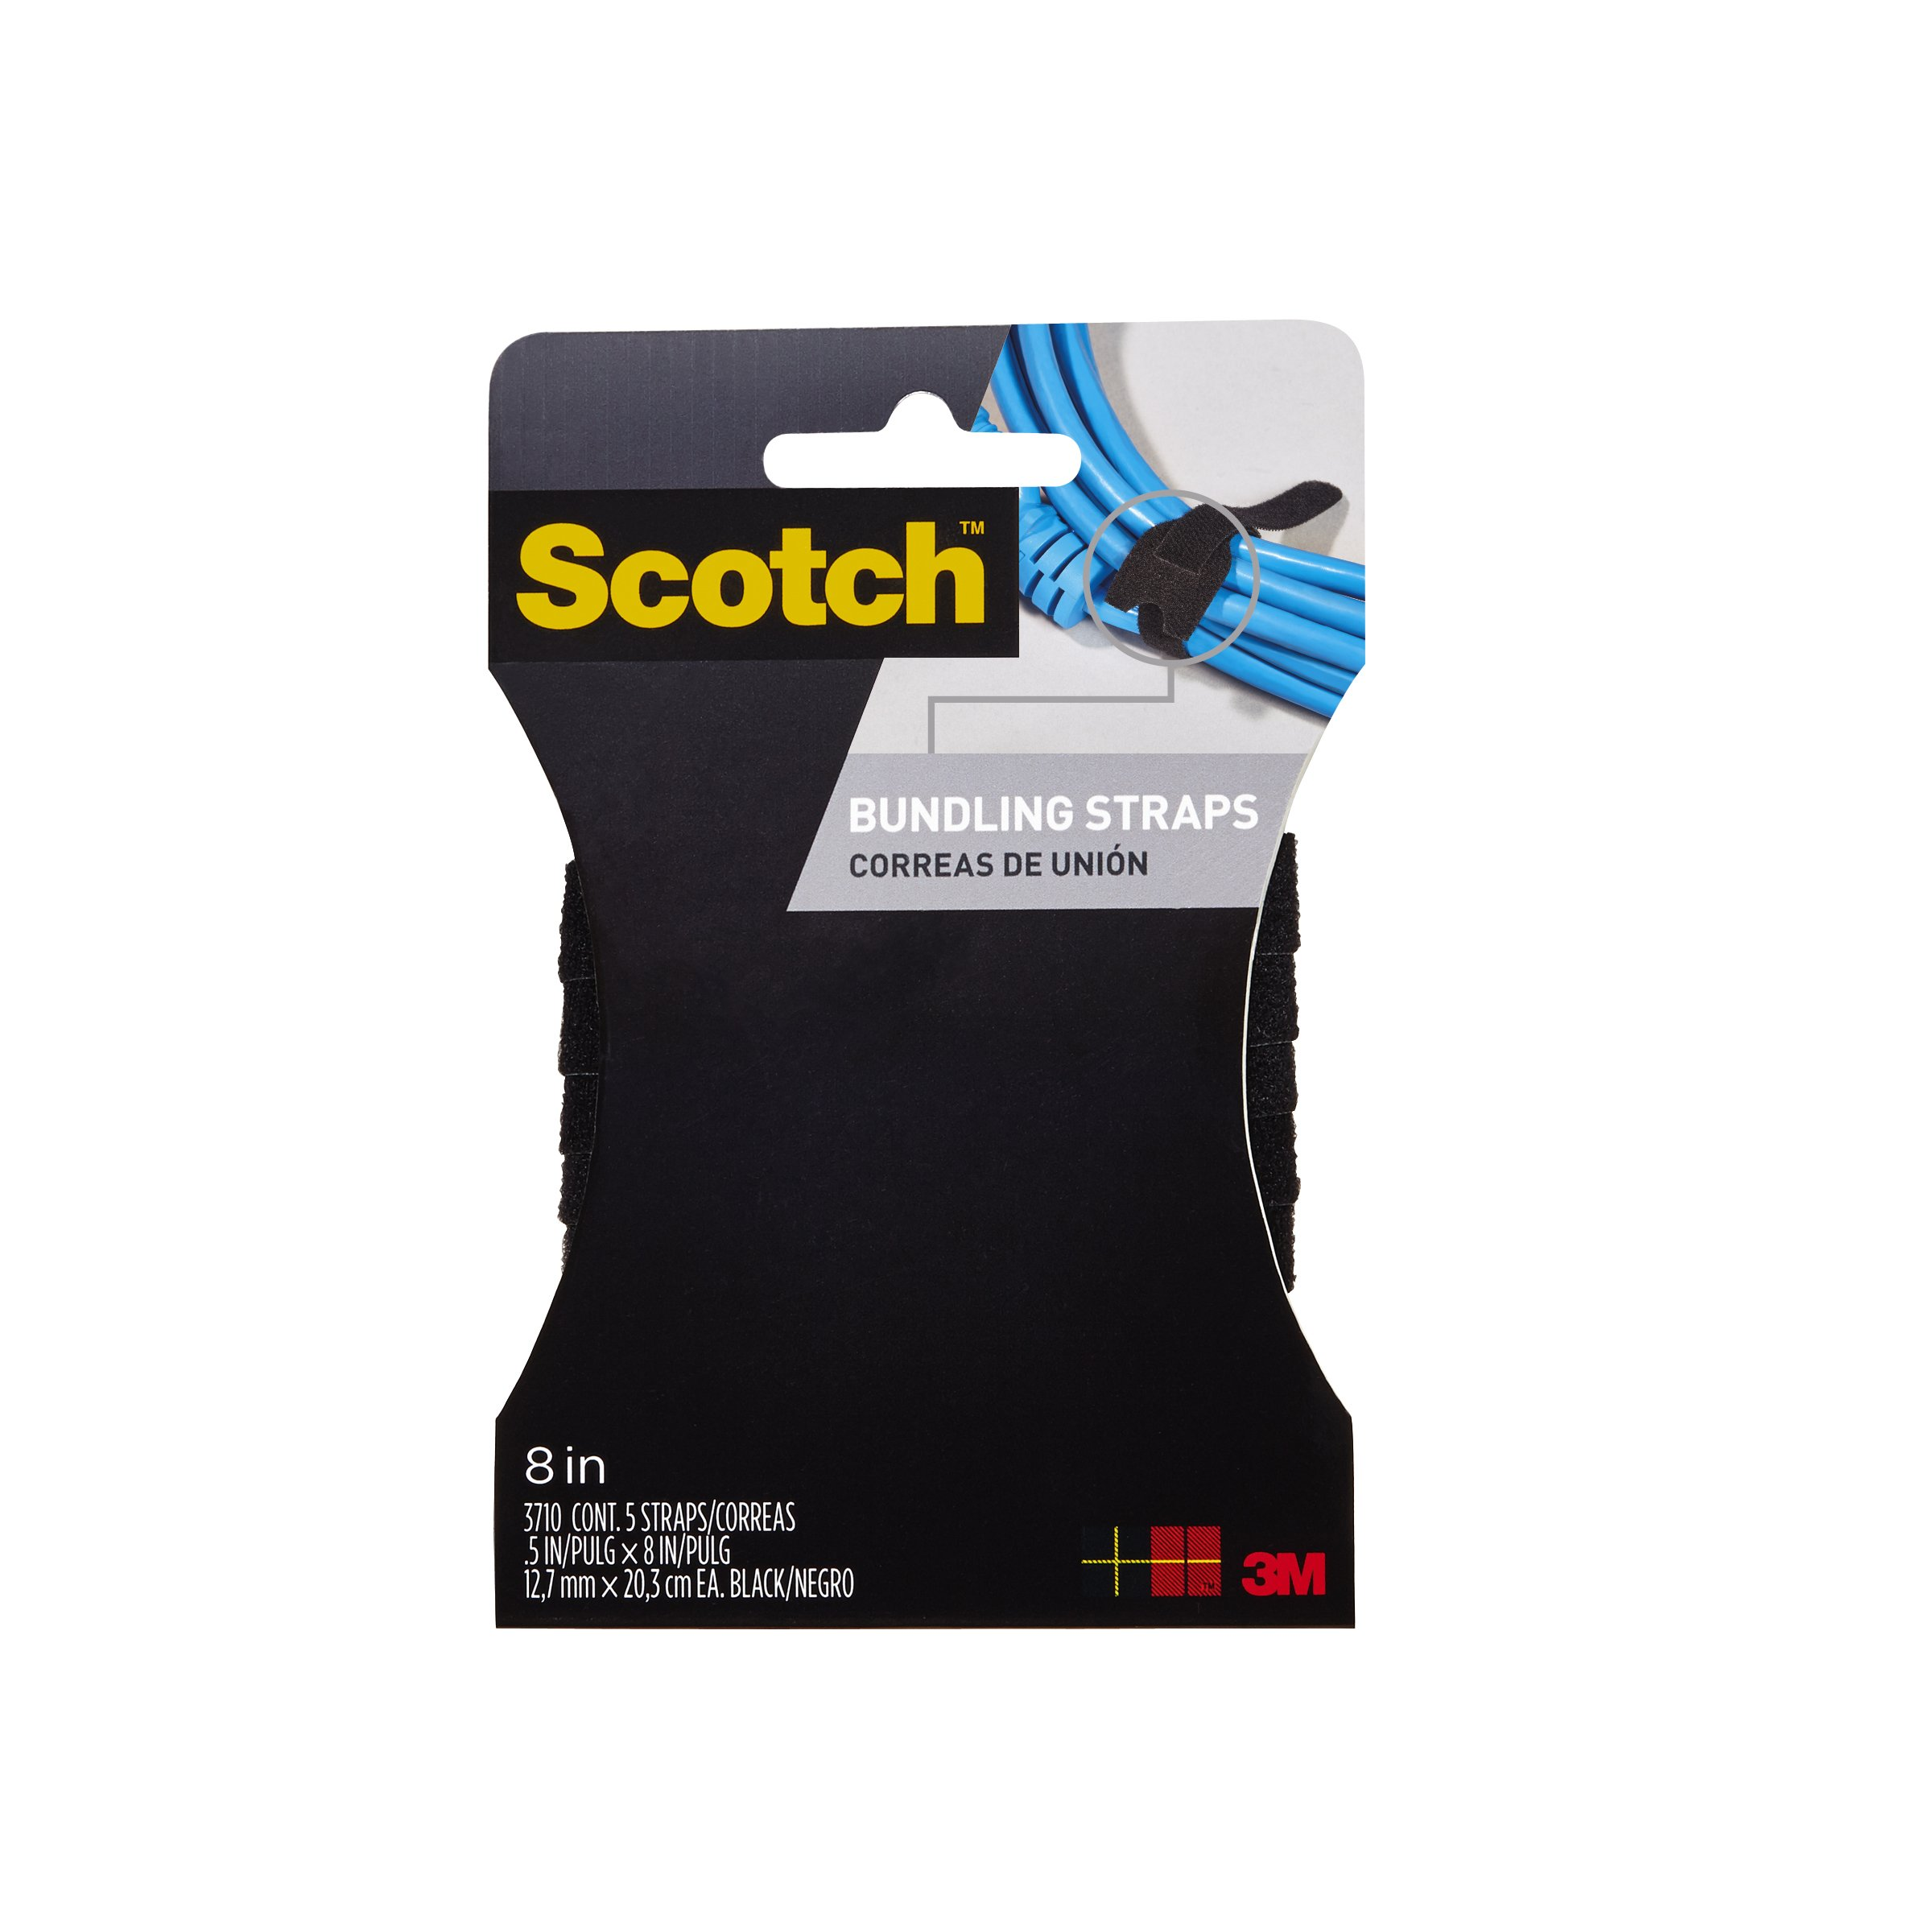 Scotch RF8010CH-C Cord Organizer Straps, Black, 8In, Pack Of 6, Black